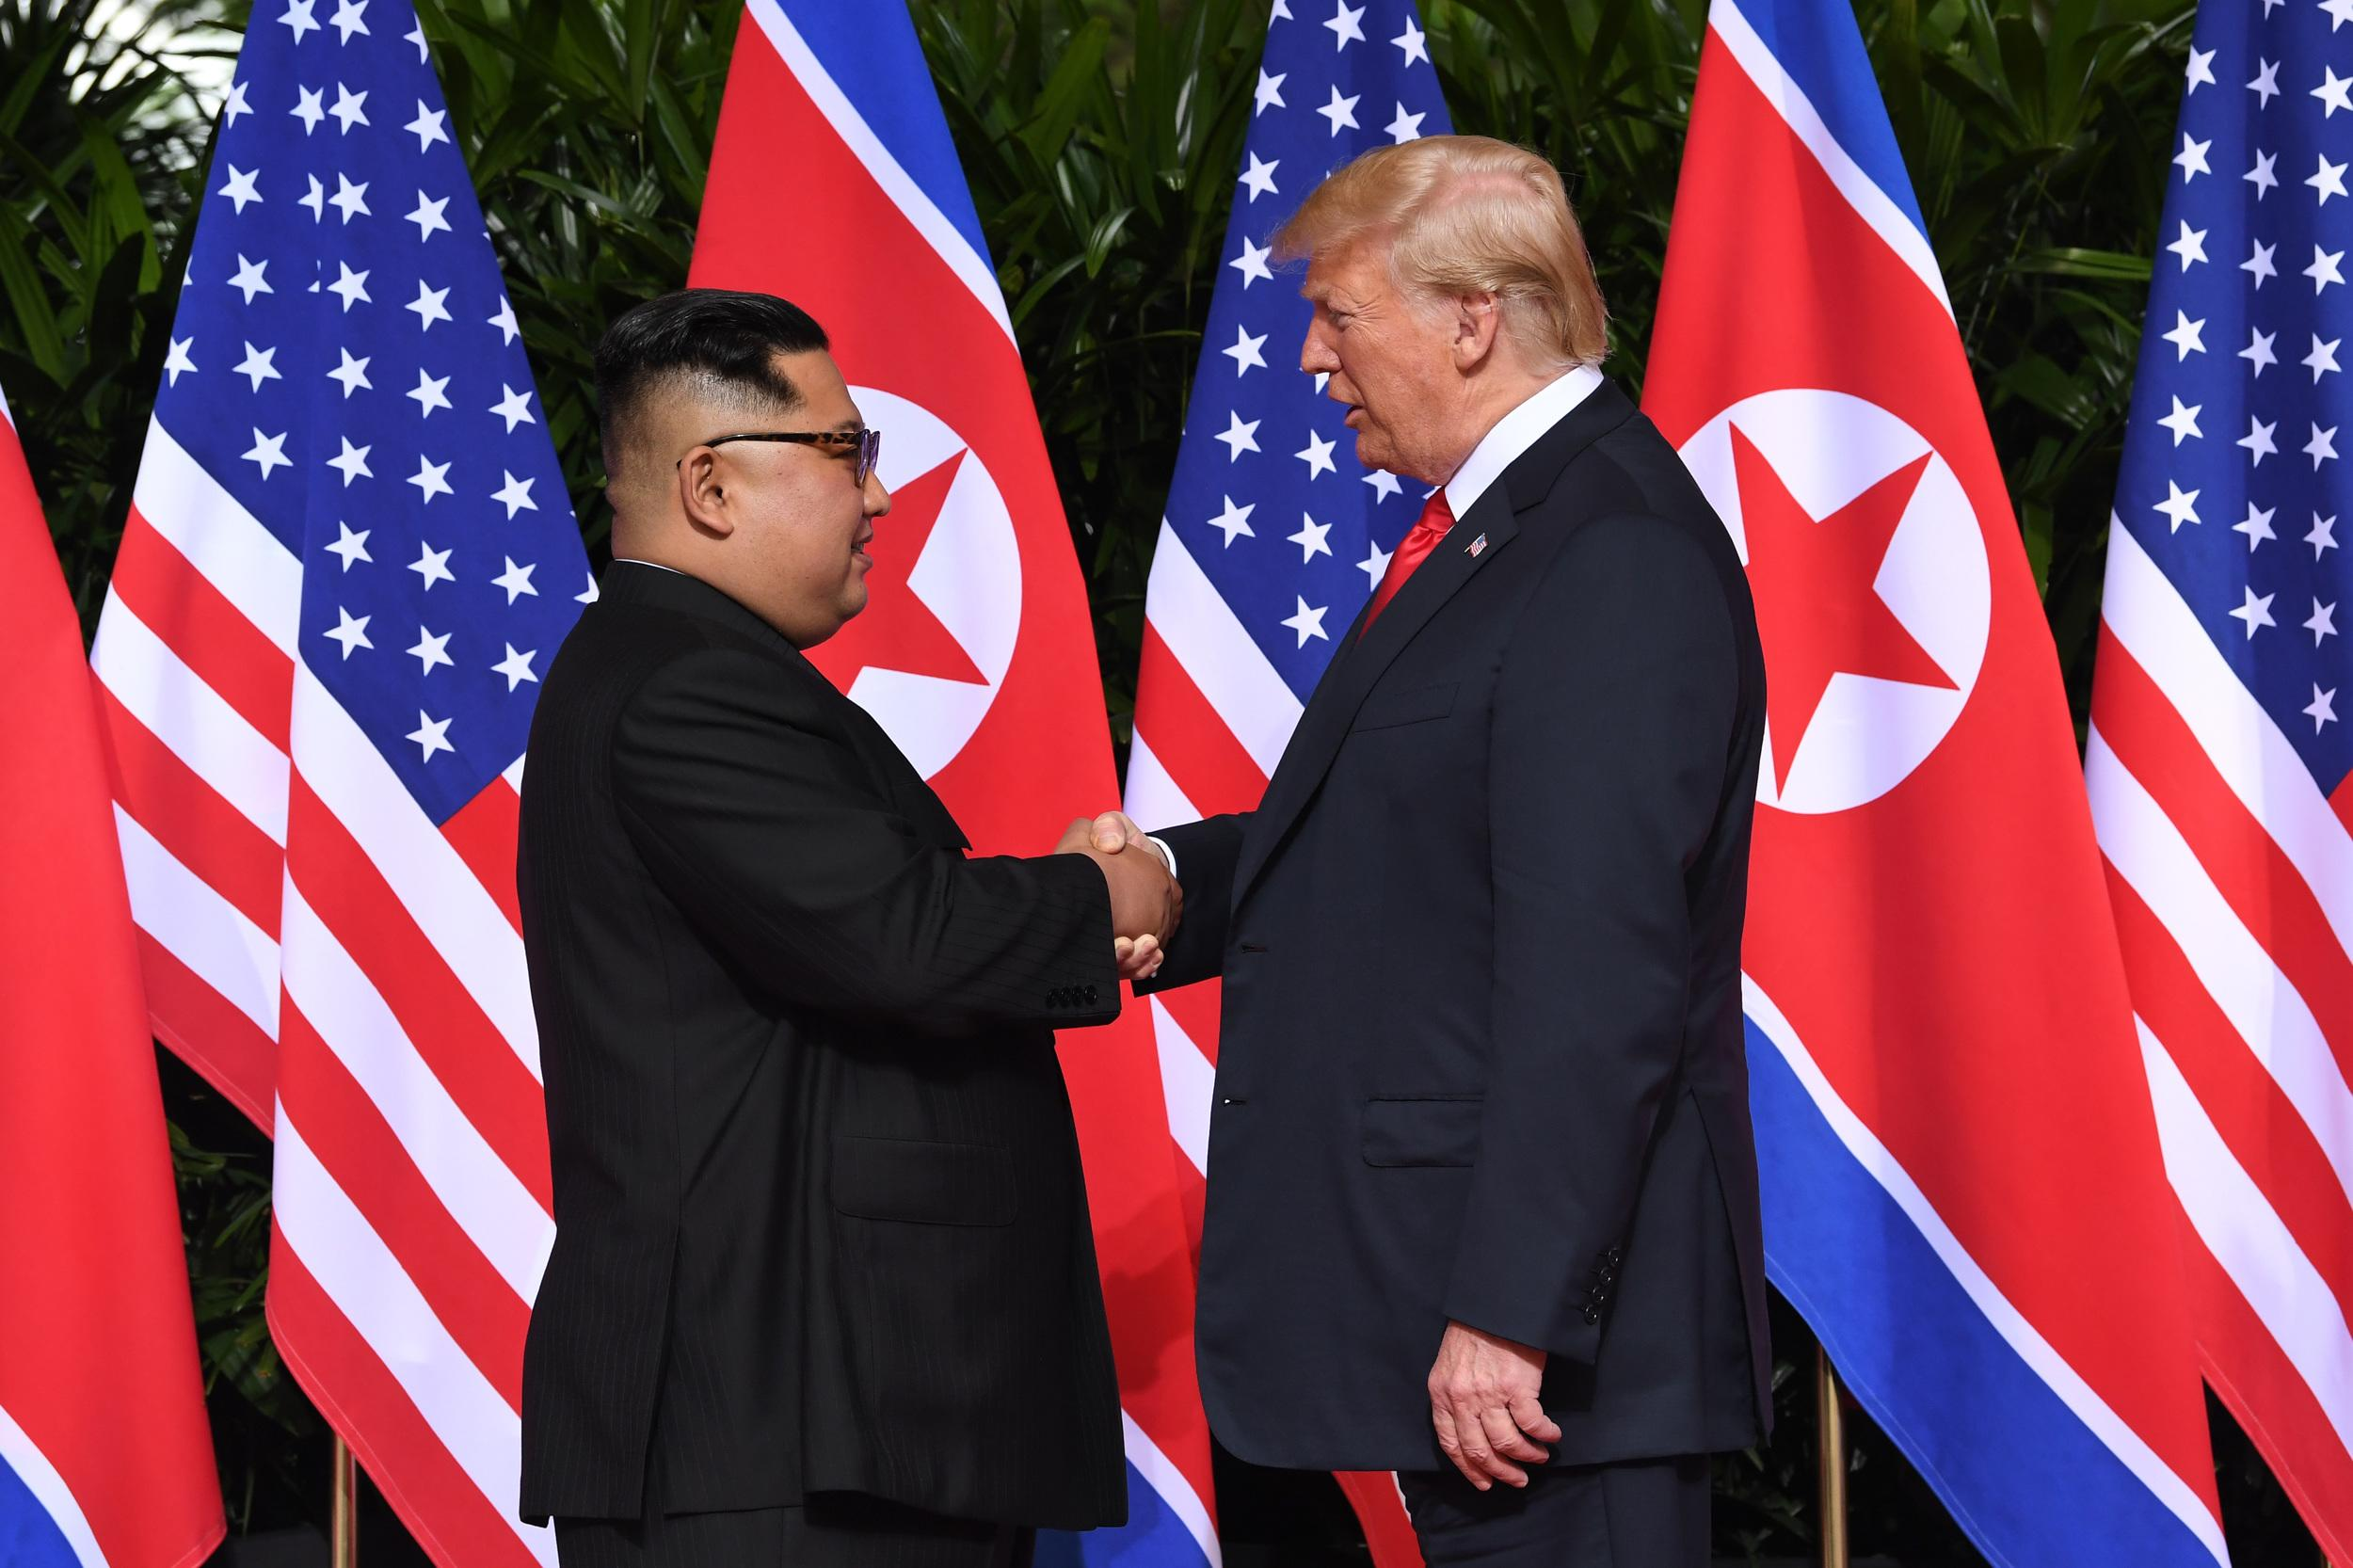 North Korea's leader Kim Jong Un (L) shakes hands with US President Donald Trump (R) at the start of their historic US-North Korea summit, at the Capella Hotel on Sentosa island in Singapore on June 12, 2018. - Donald Trump and Kim Jong Un have become on June 12 the first sitting US and North Korean leaders to meet, shake hands and negotiate to end a decades-old nuclear stand-off. (Photo by SAUL LOEB / AFP) (Photo credit should read SAUL LOEB/AFP/Getty Images)